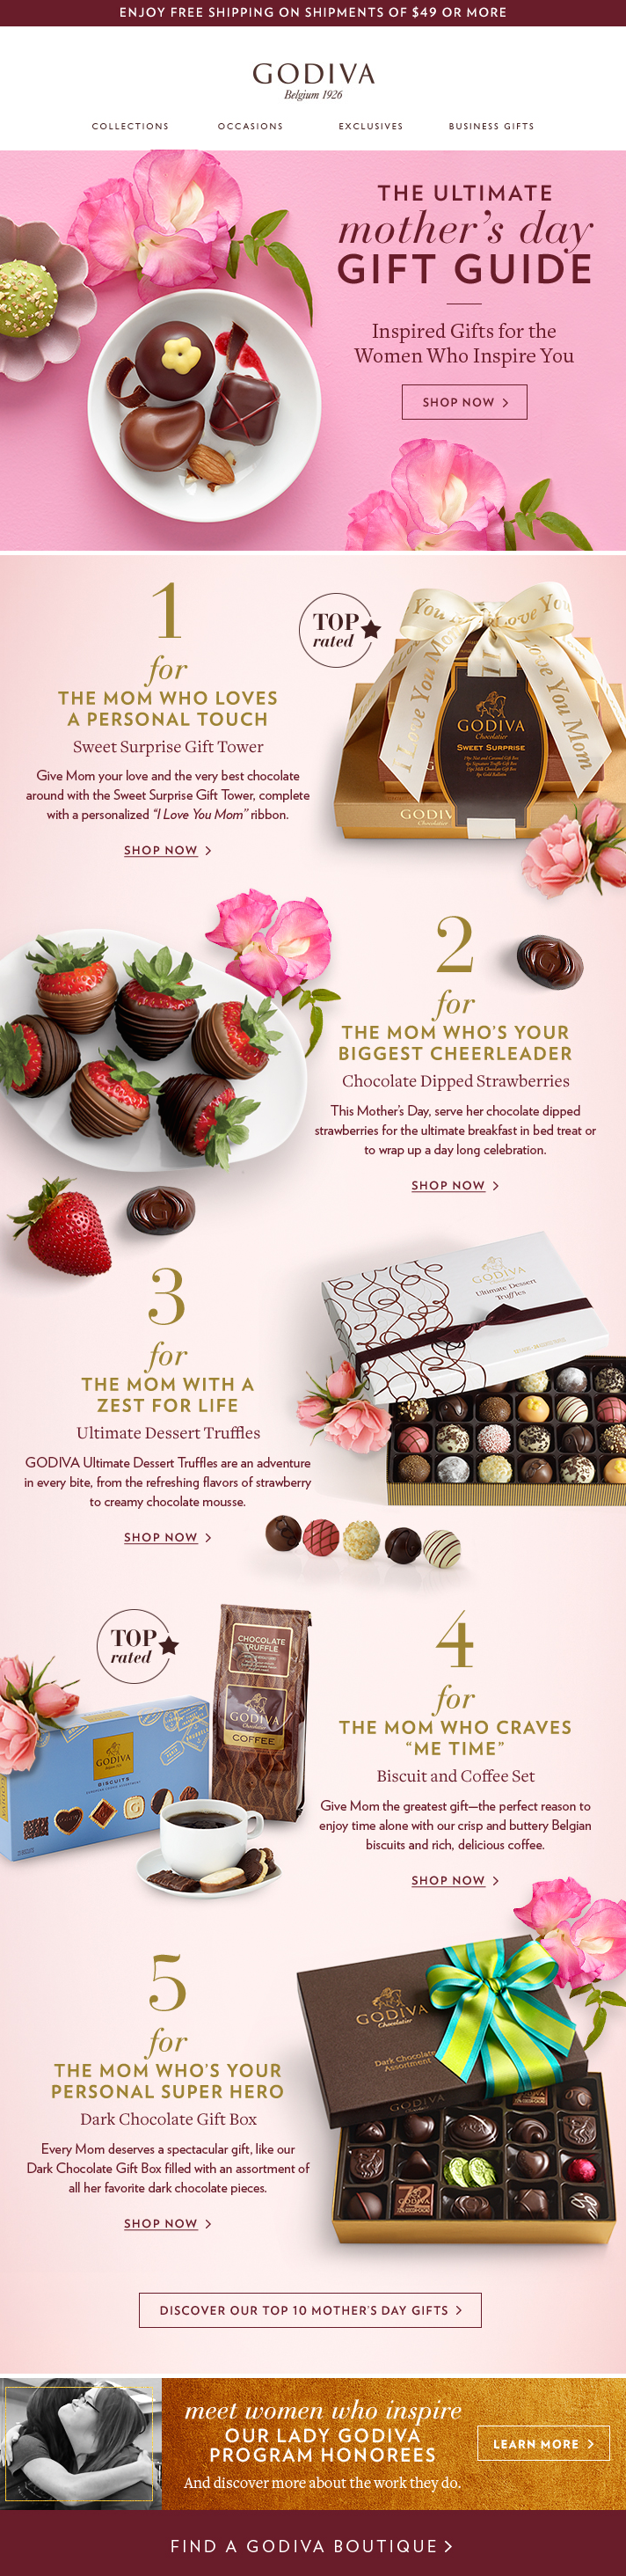 Mother's Day email from Godiva